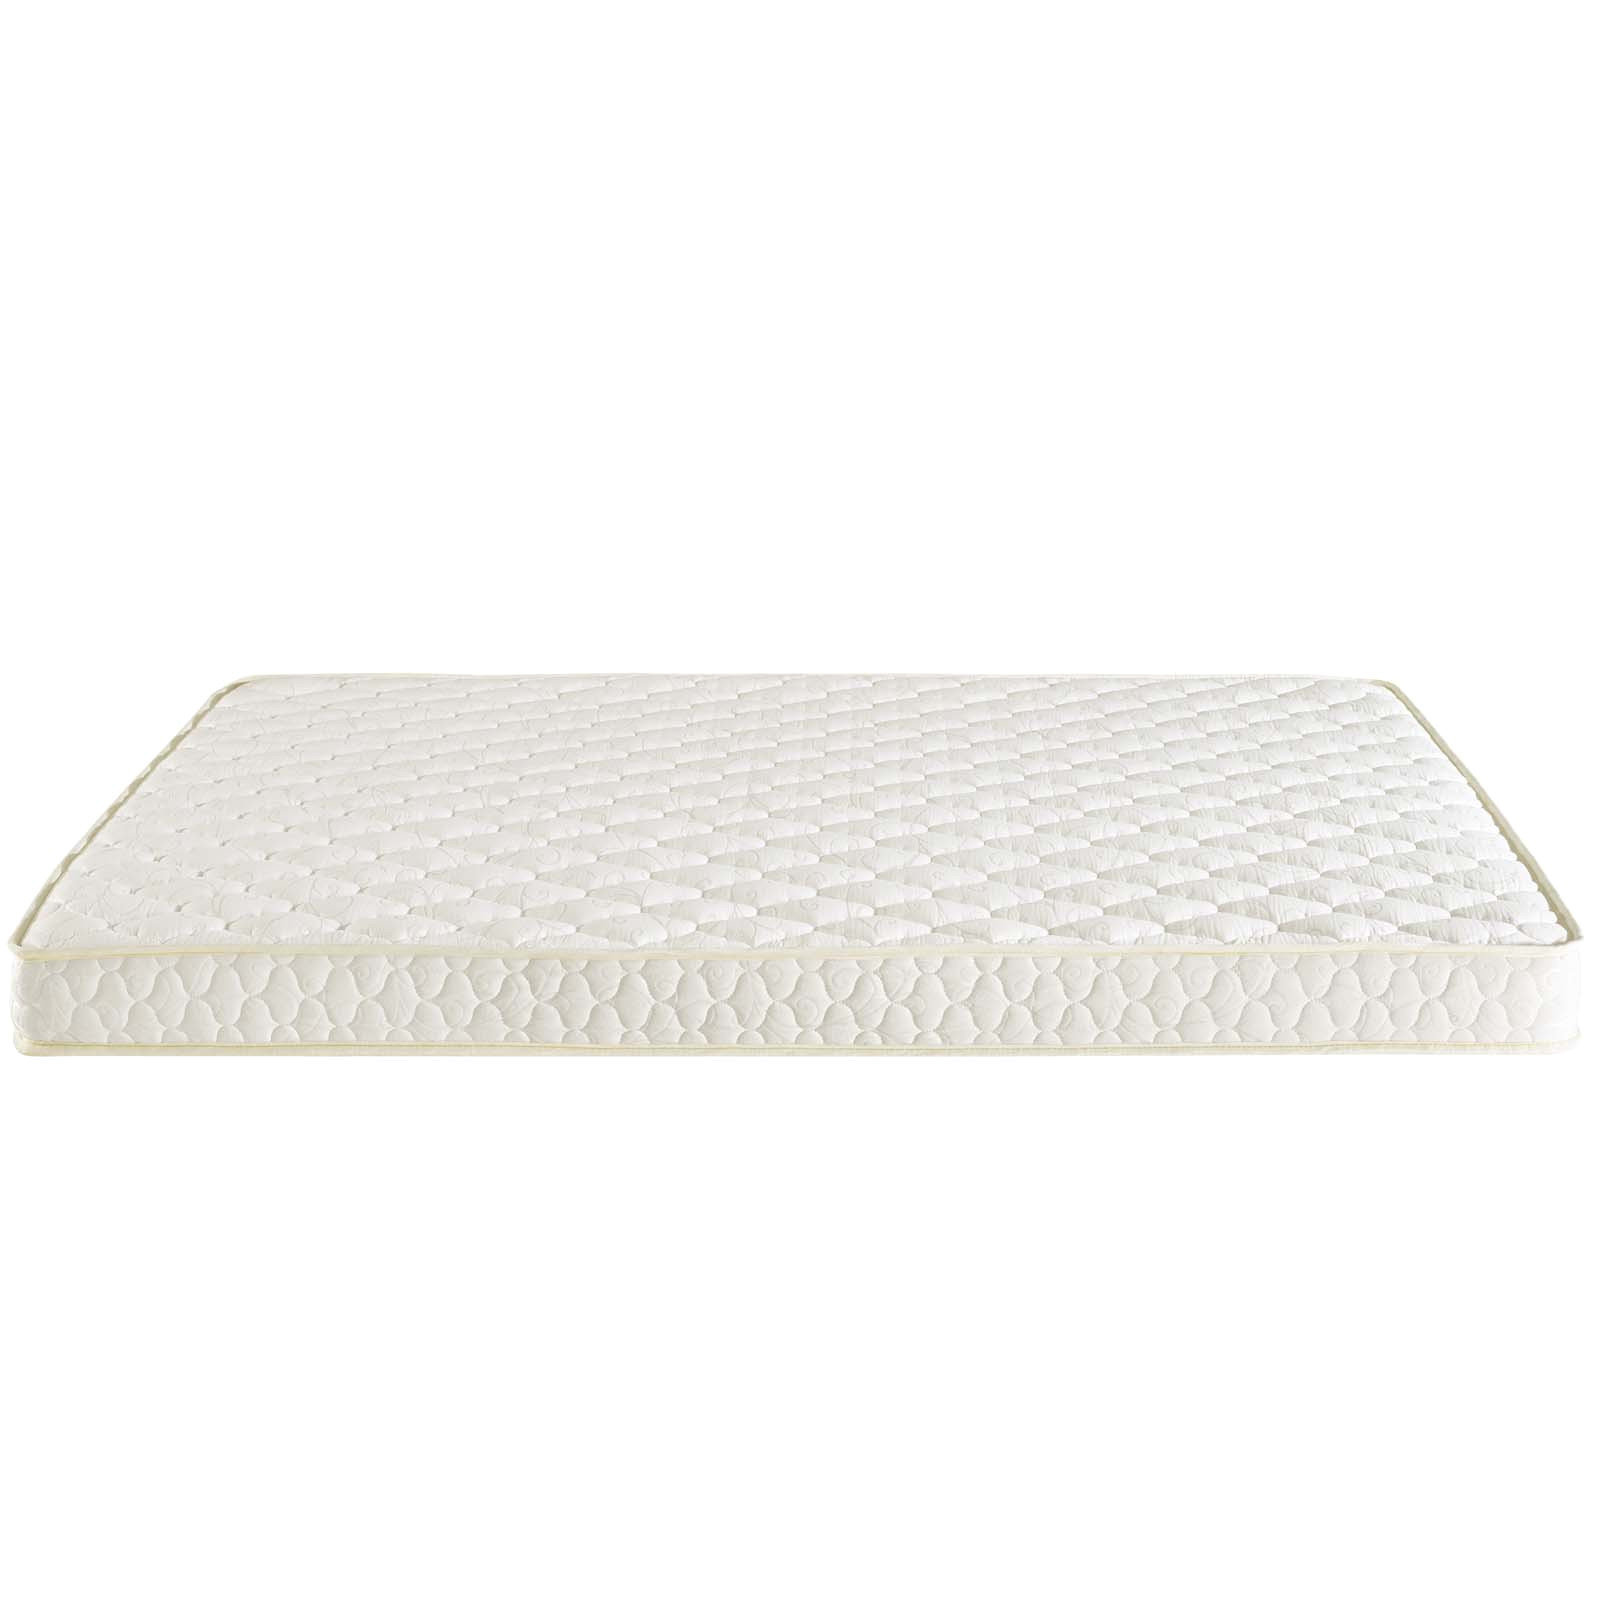 How Much Weight Can A Memory Foam Mattress Hold Modway Emma 6 Two Layer Memory Foam Mattress Multiple Sizes